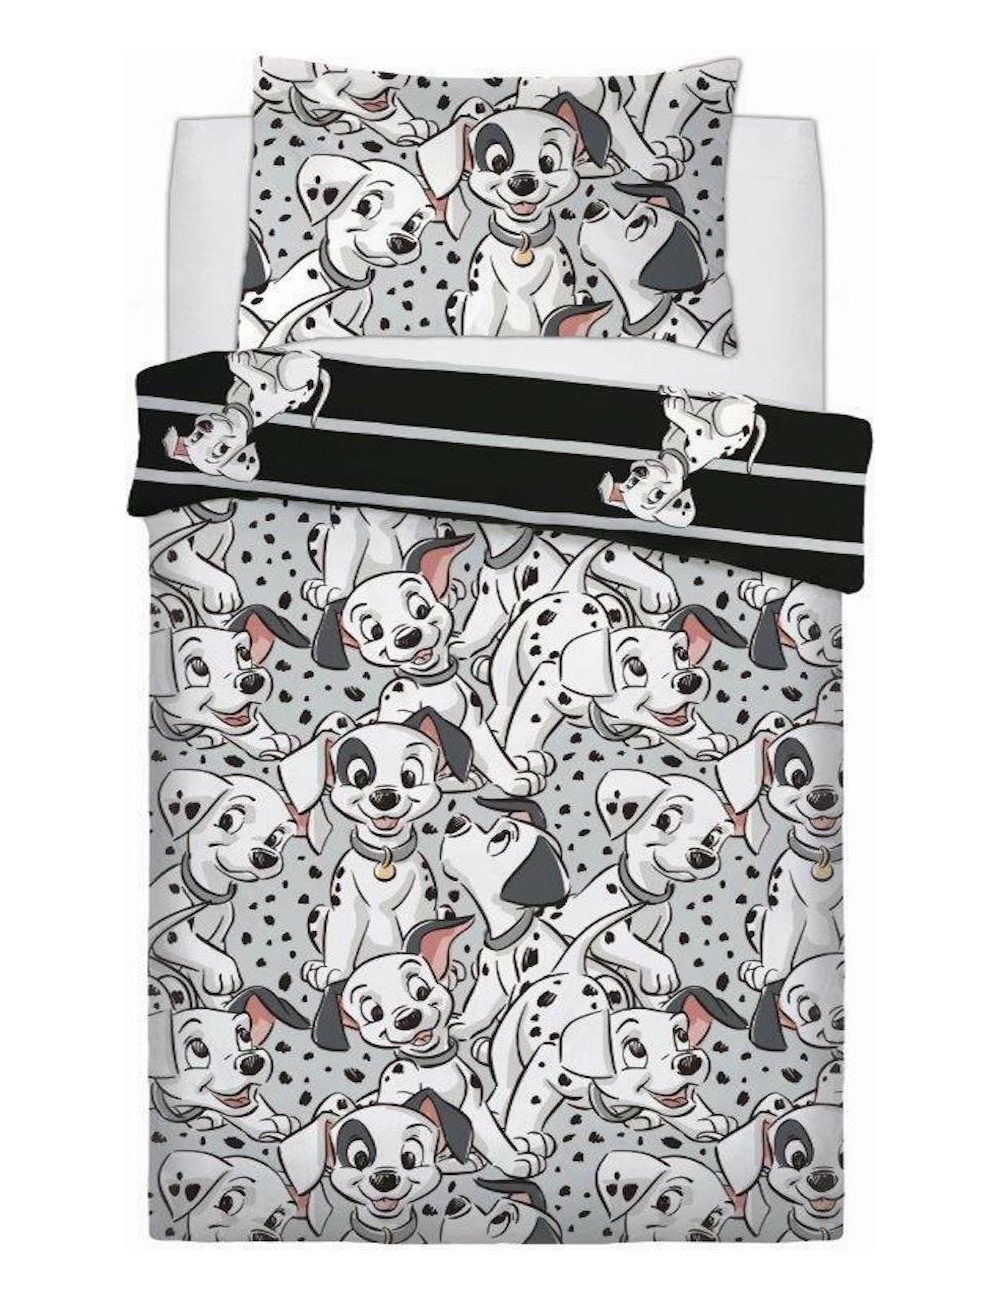 Disney 101 Dalmatians Reversible Rotary Single Bed Duvet Quilt Cover Set